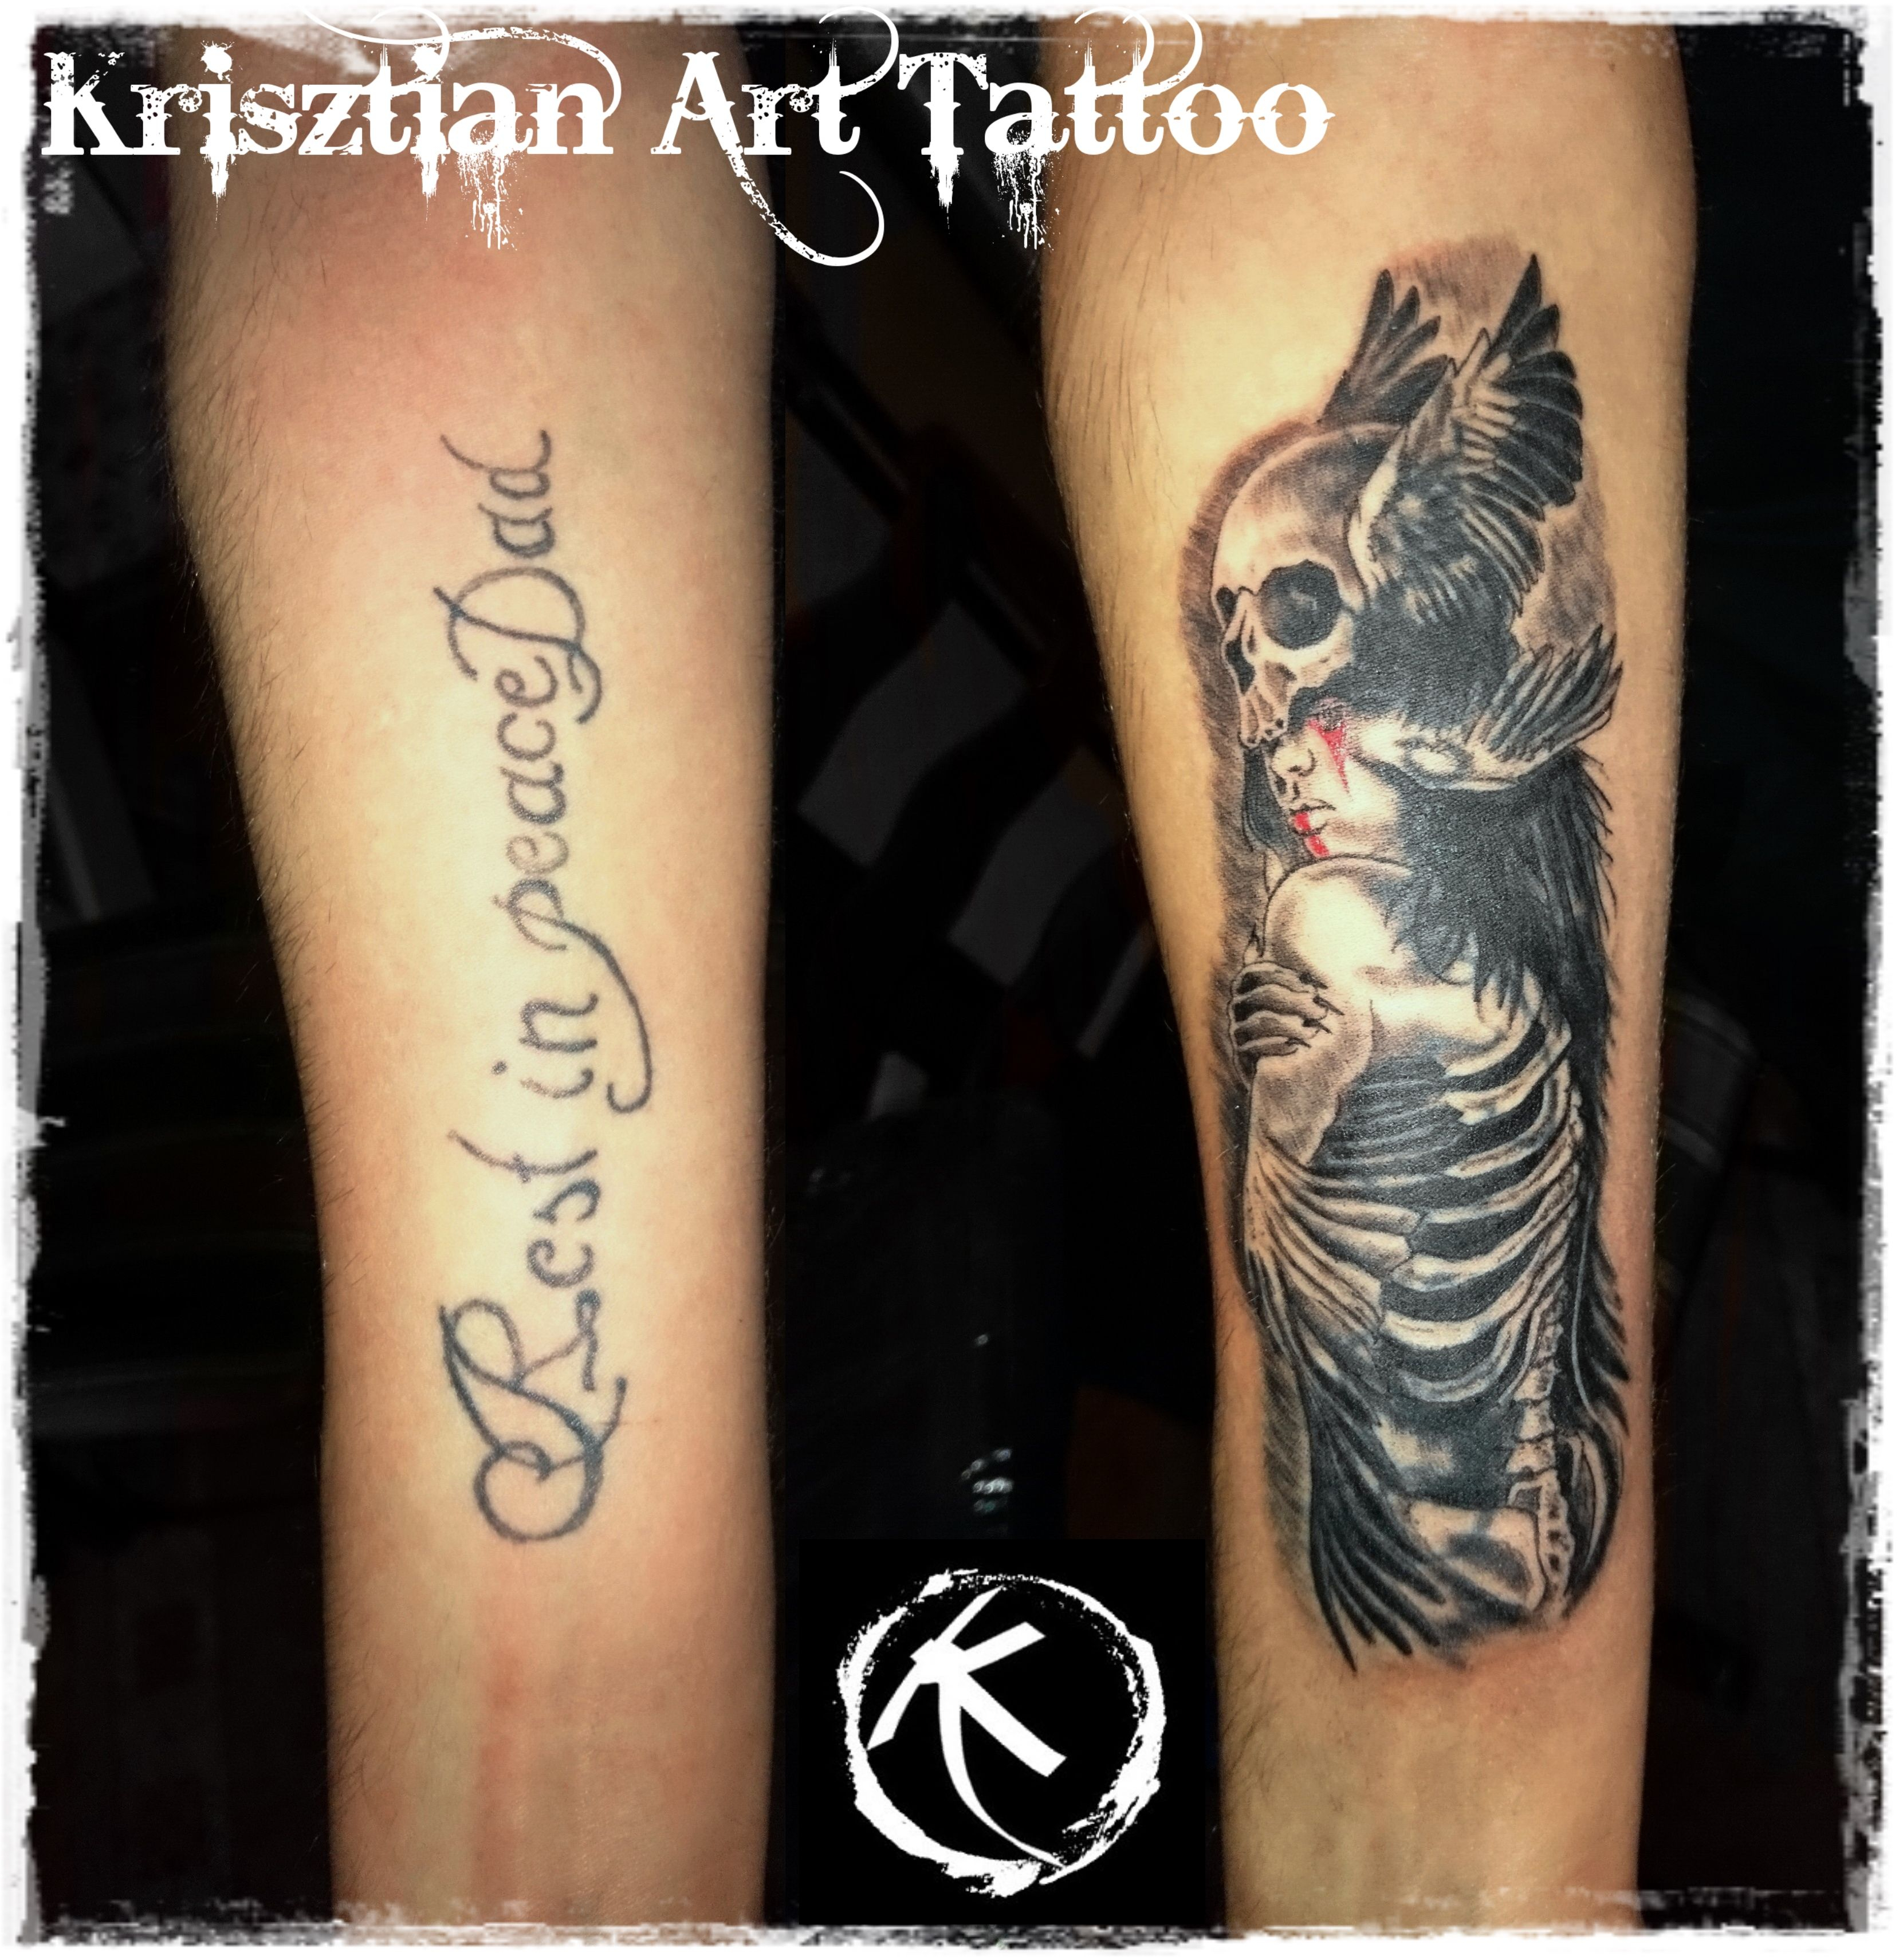 Krisztian Art Tattoo Cover Up Tattoo Forearm Skull And Girl with dimensions 3322 X 3422